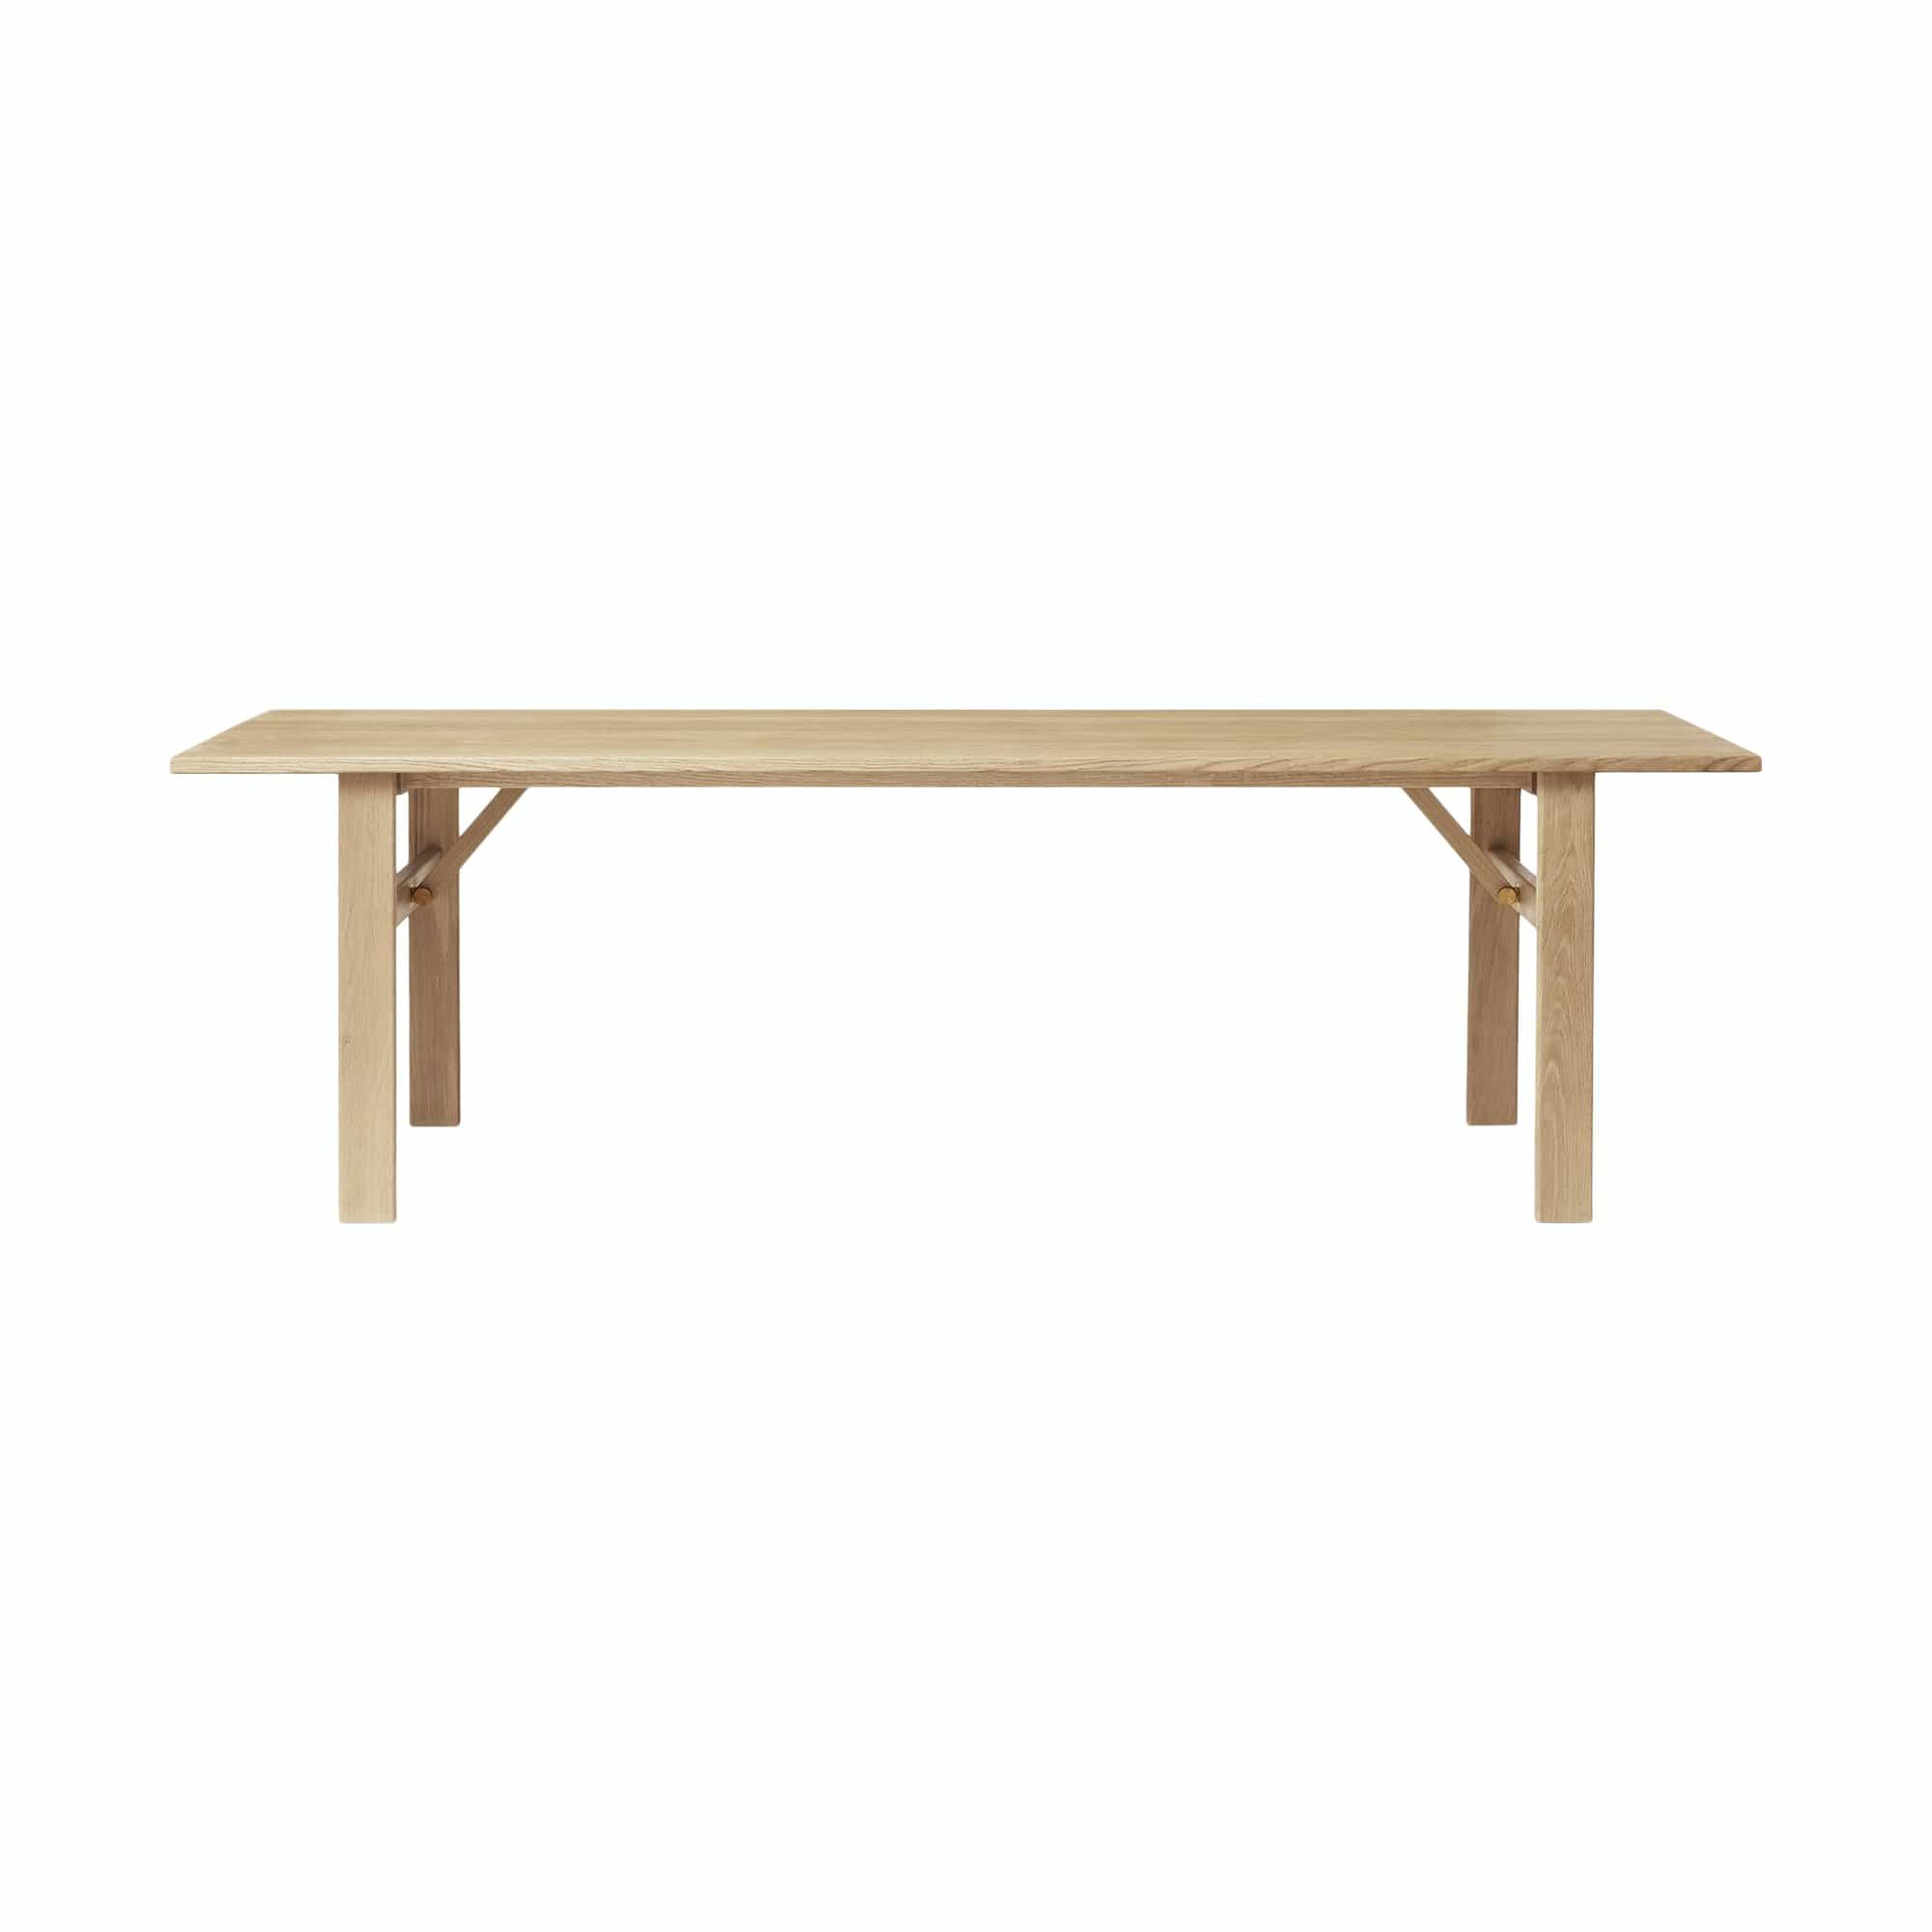 Damsbo Master Dining Table - White Oak